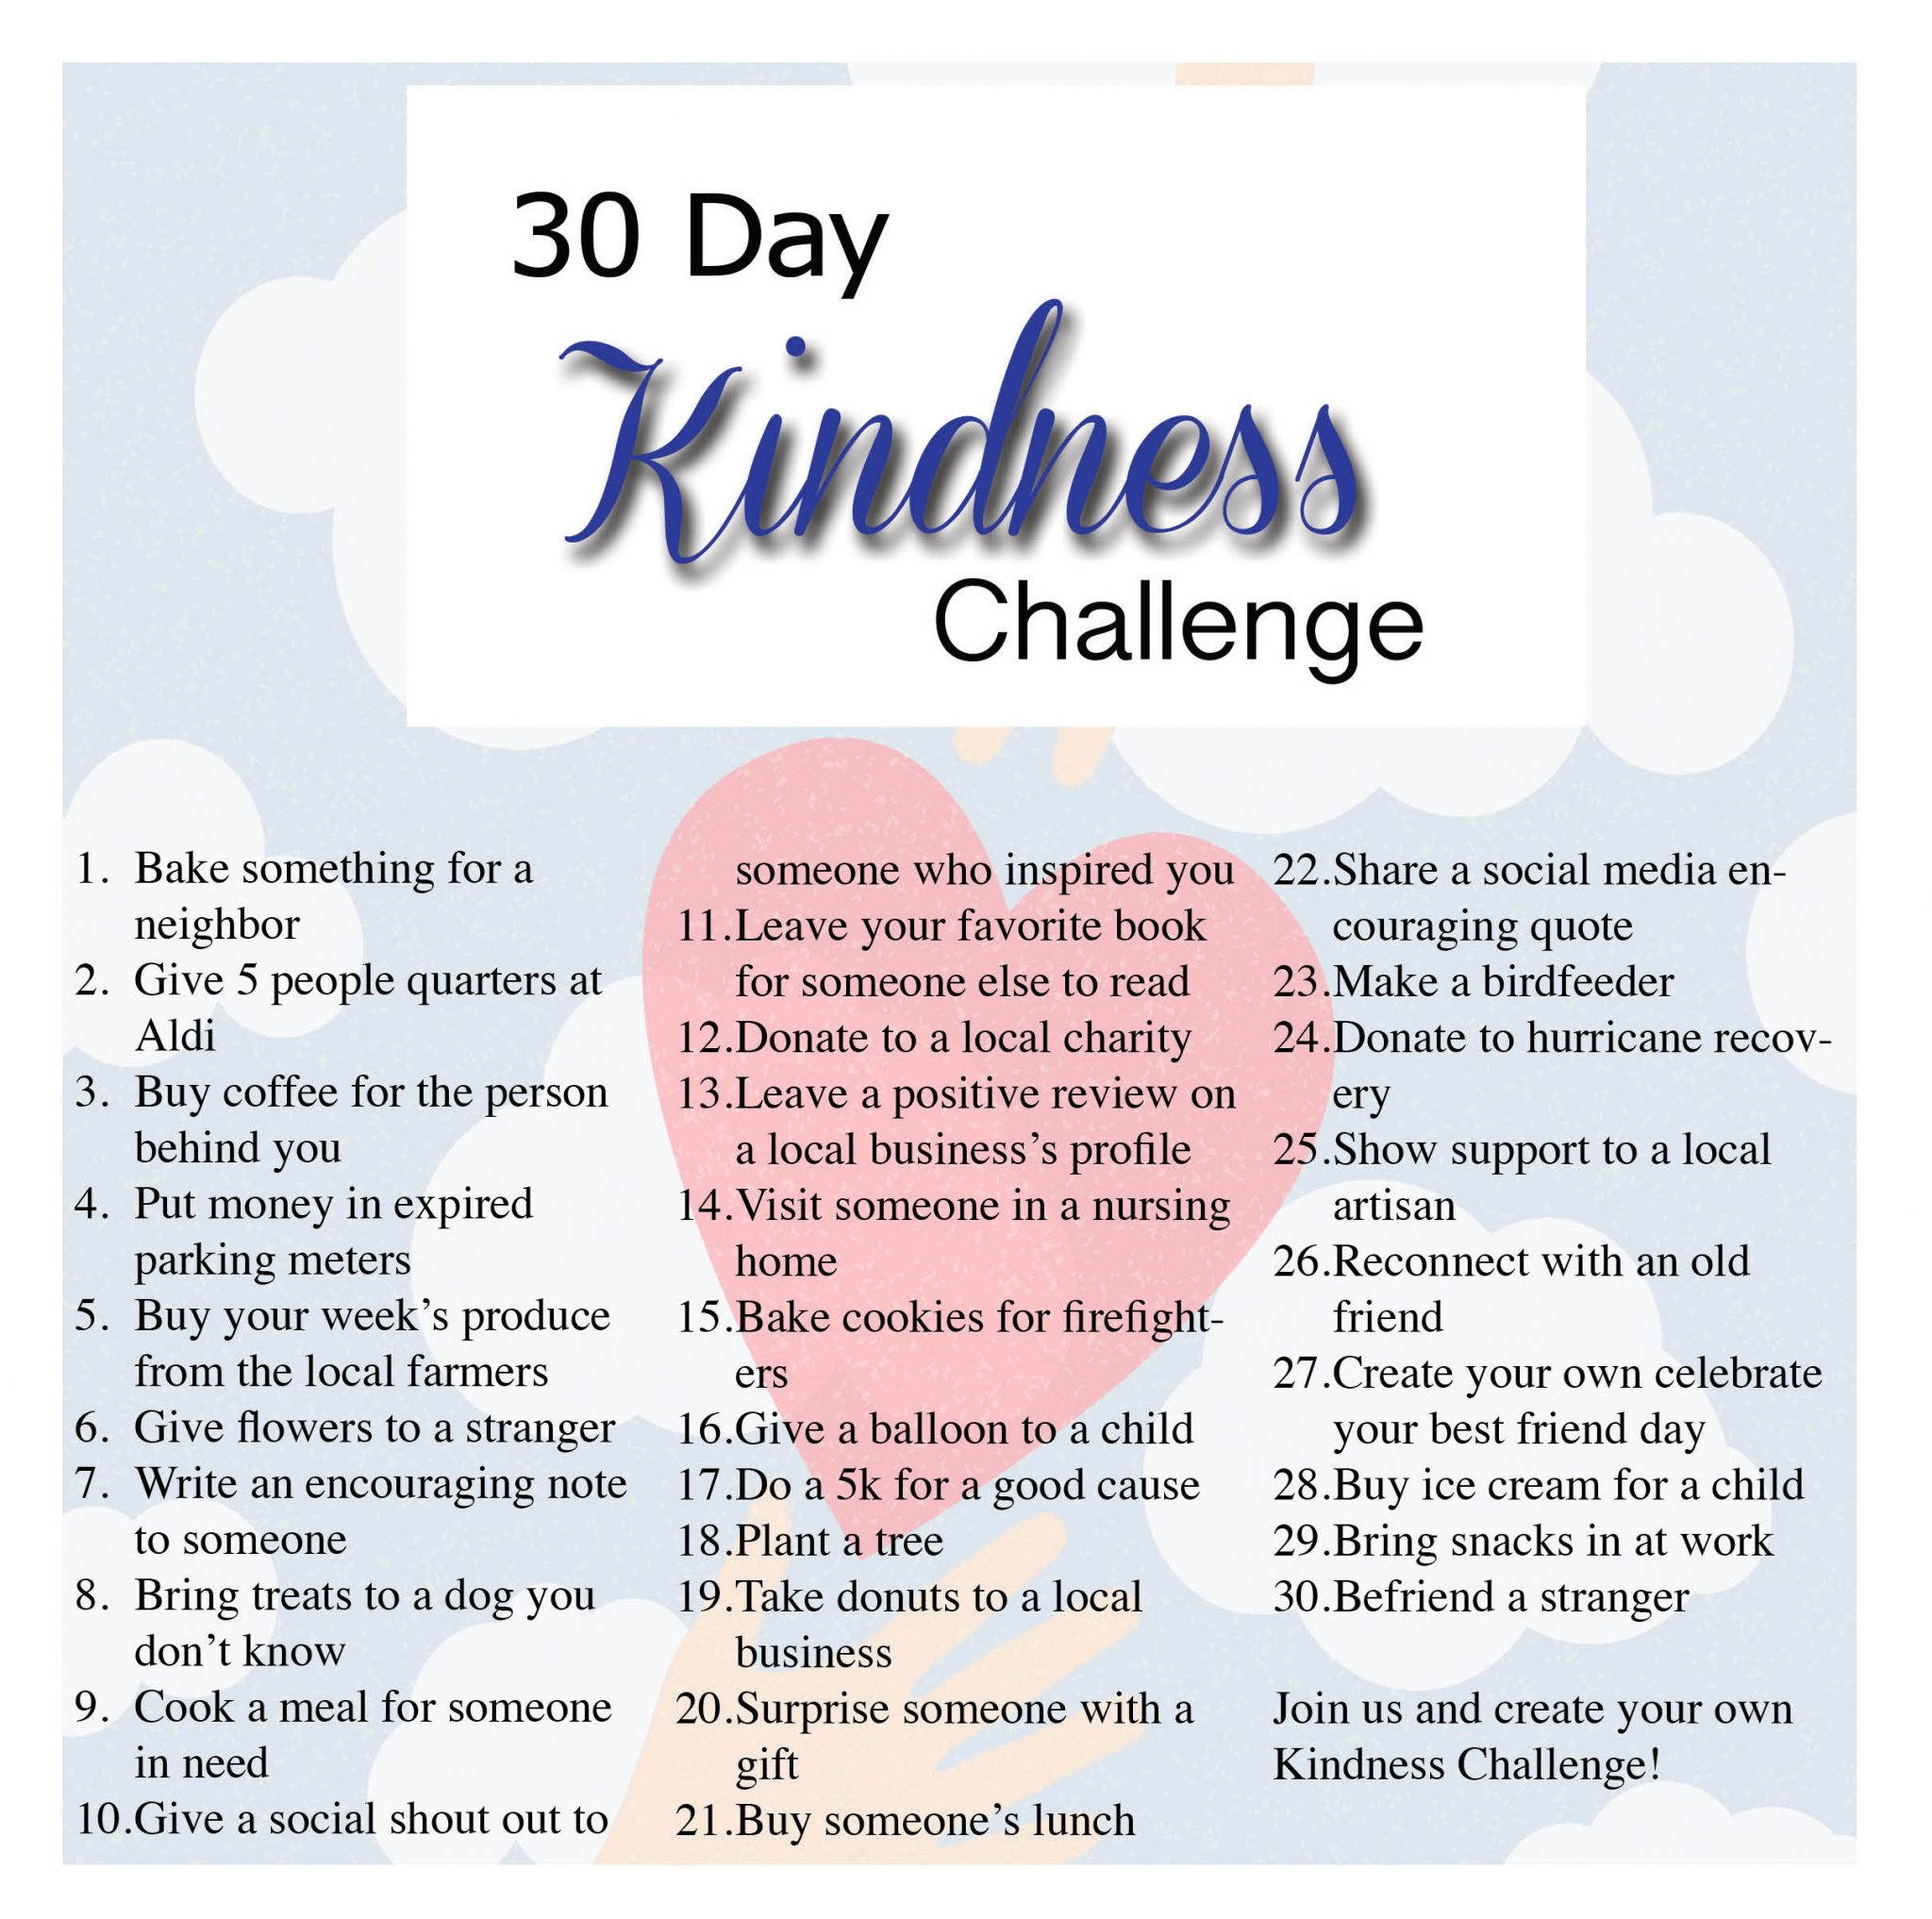 kindness heats up with a 30 day challenge david white services